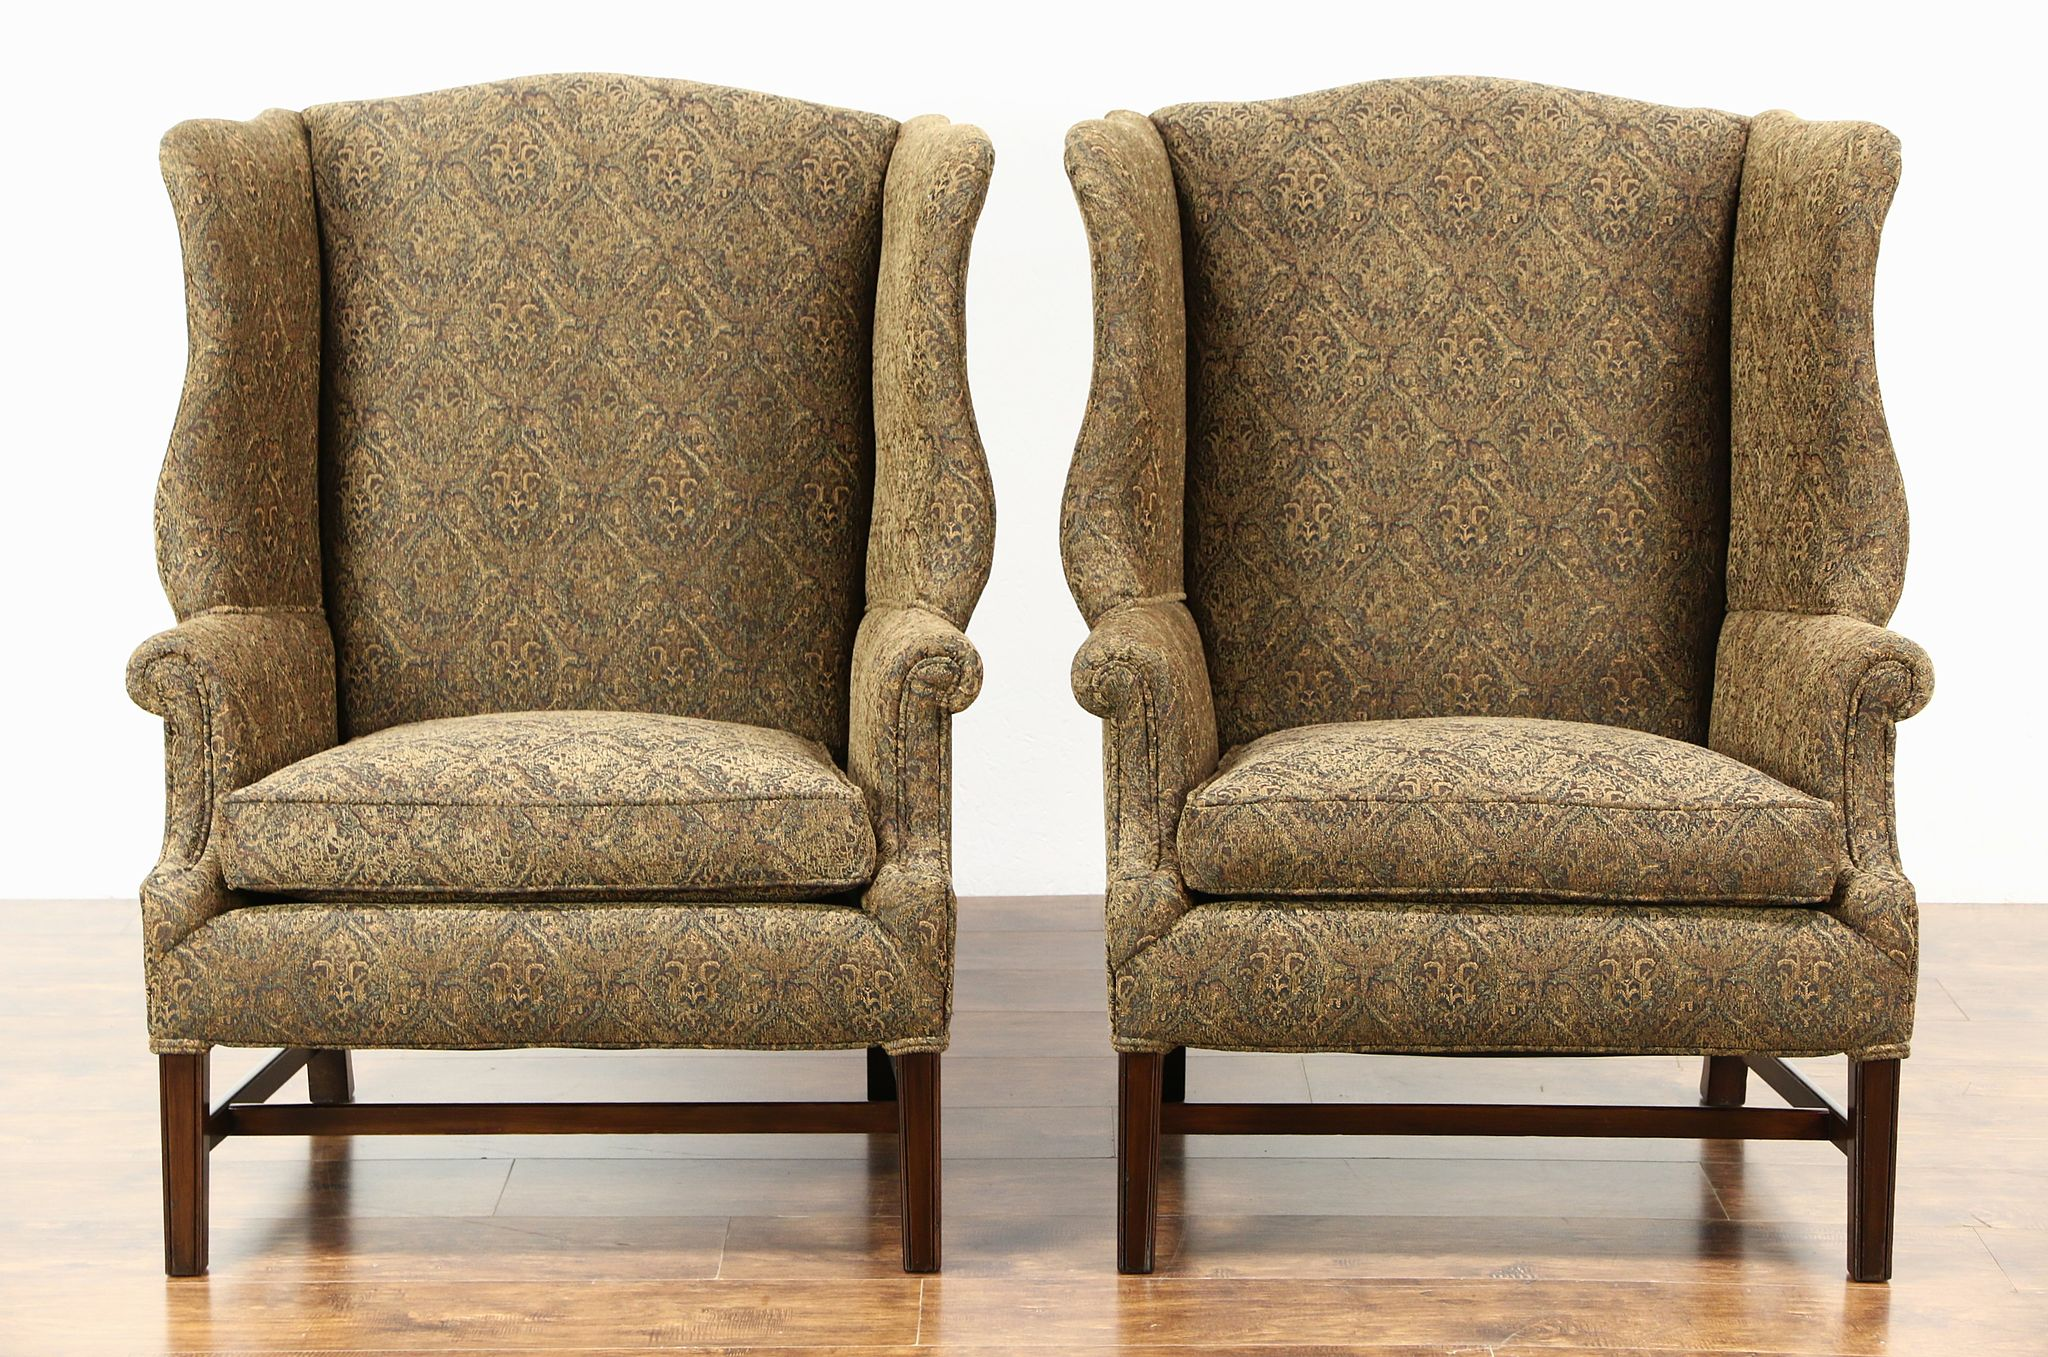 traditional wingback chair desk makeover sold pair of large vintage mahogany wing chairs newly upholstered harp gallery